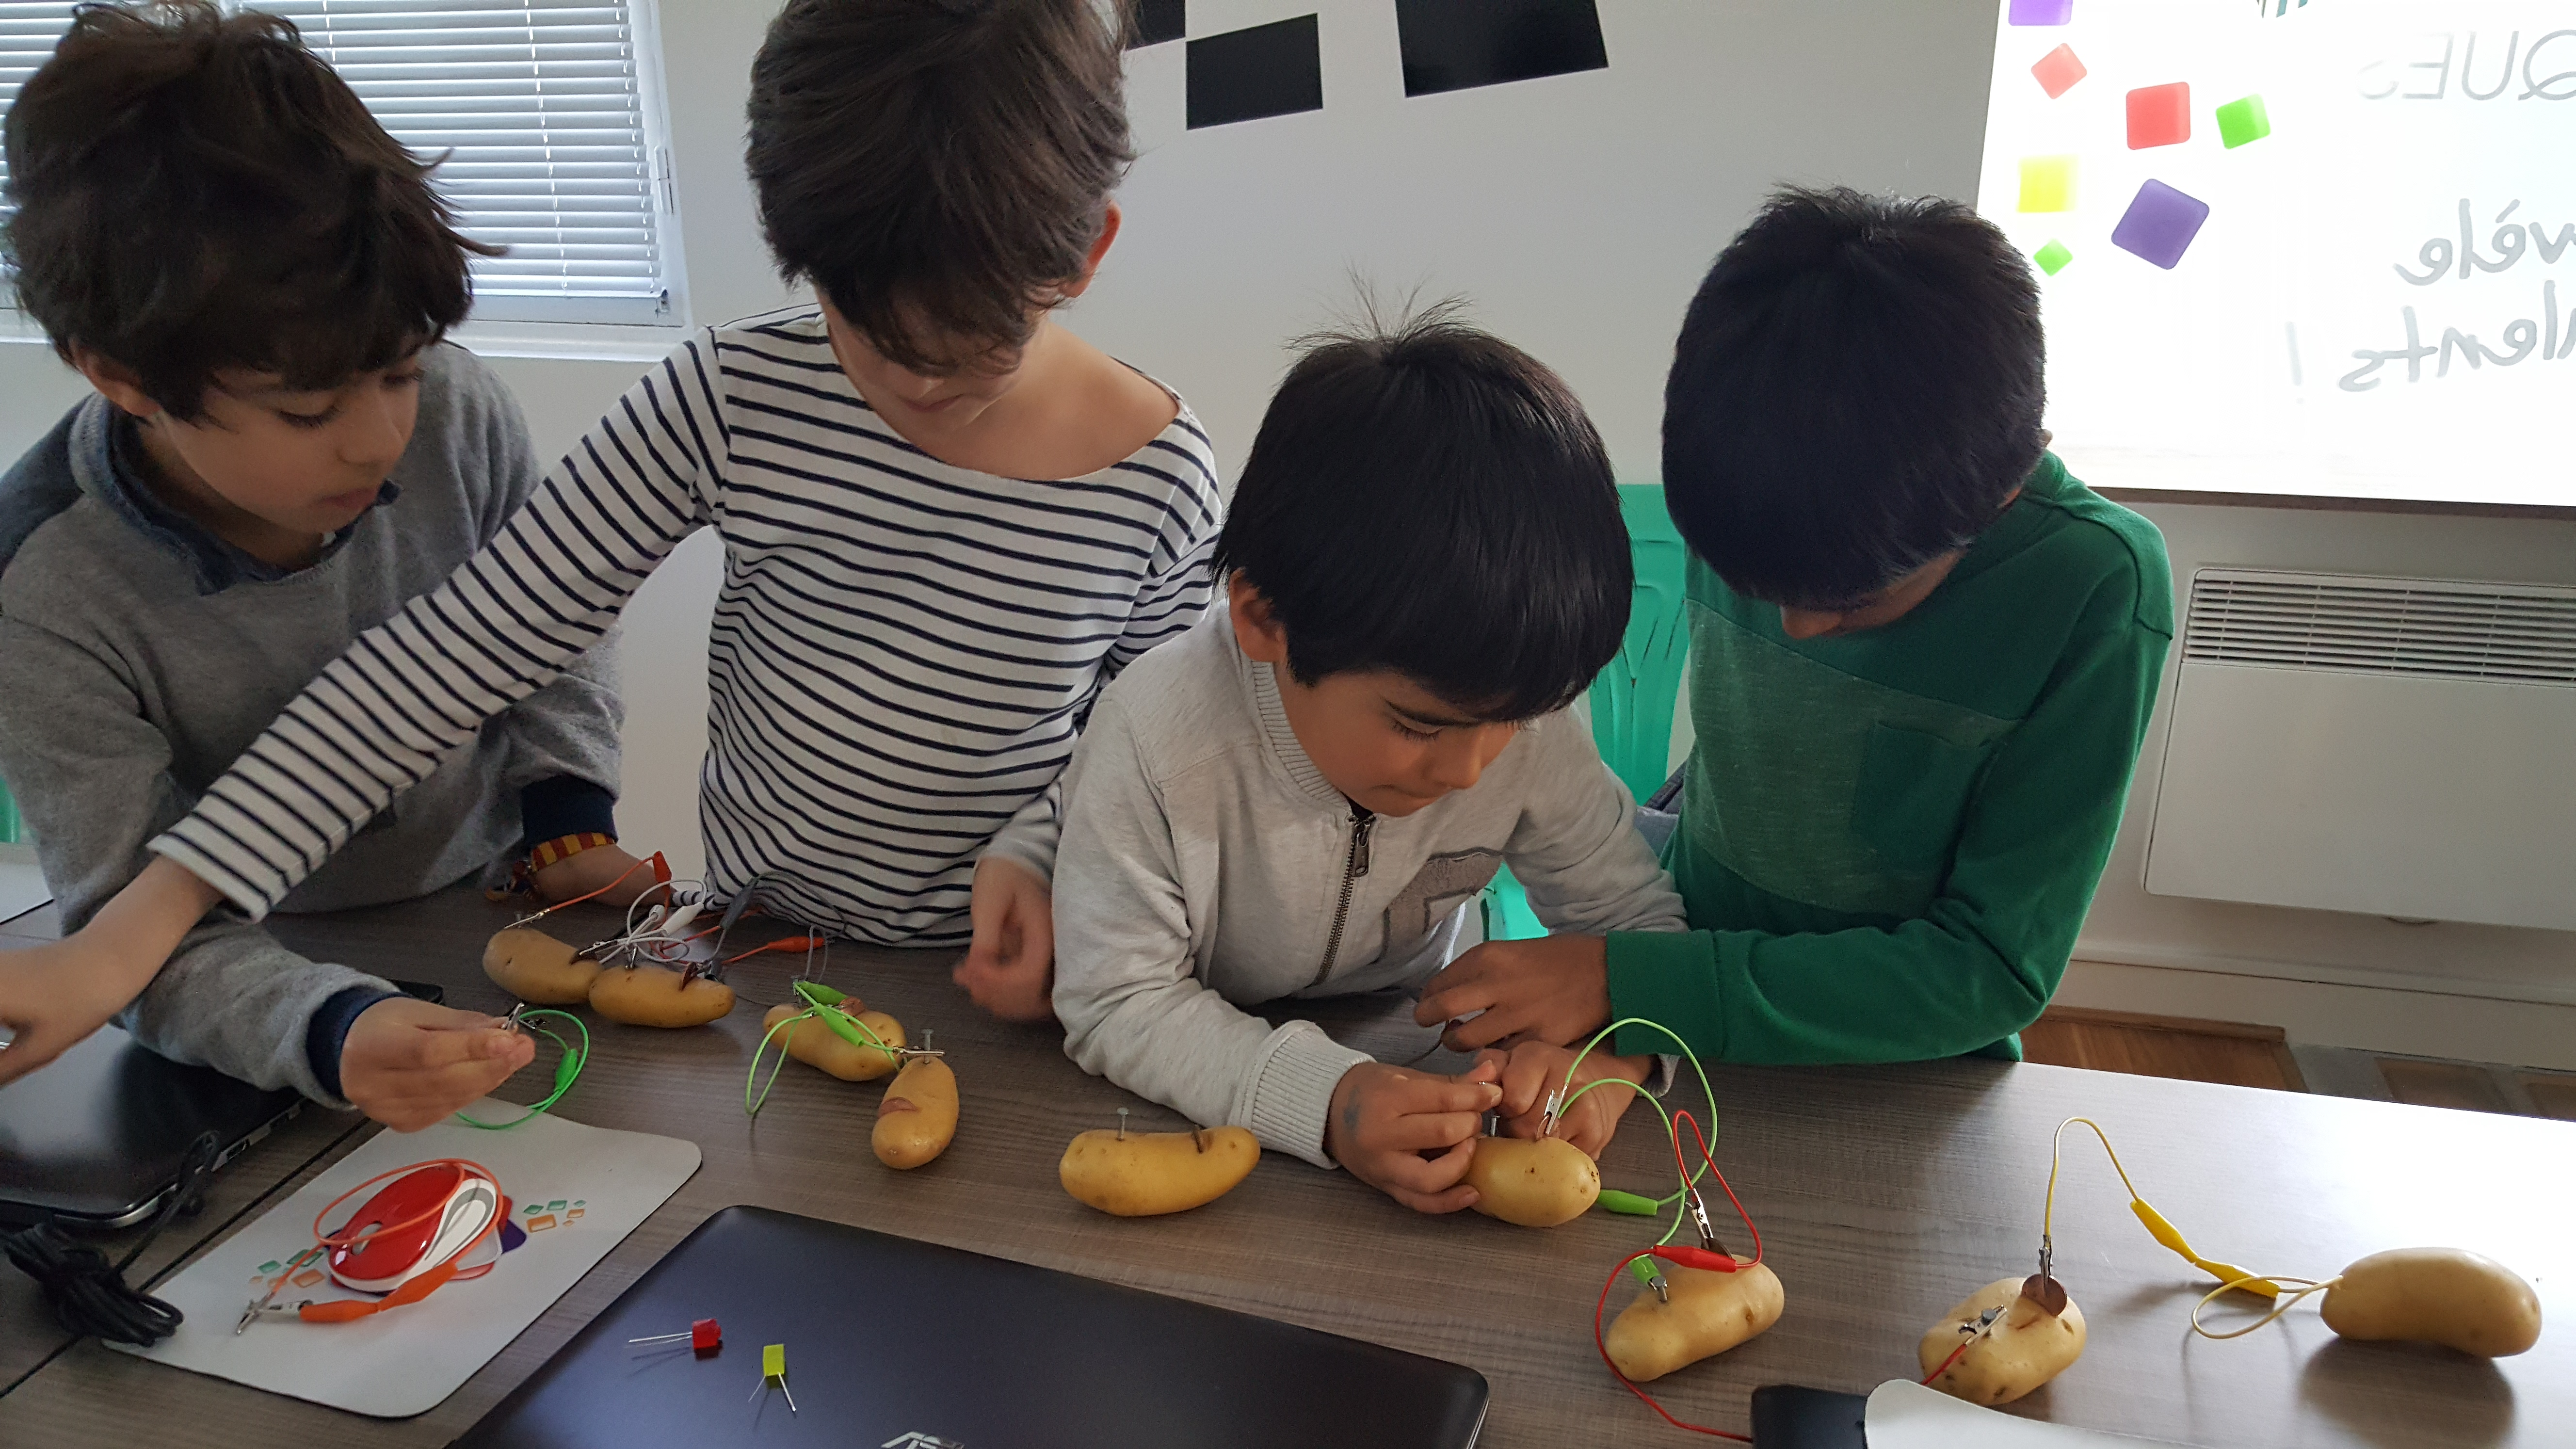 Ateliers hebdos 7-9 ans Electronique patate